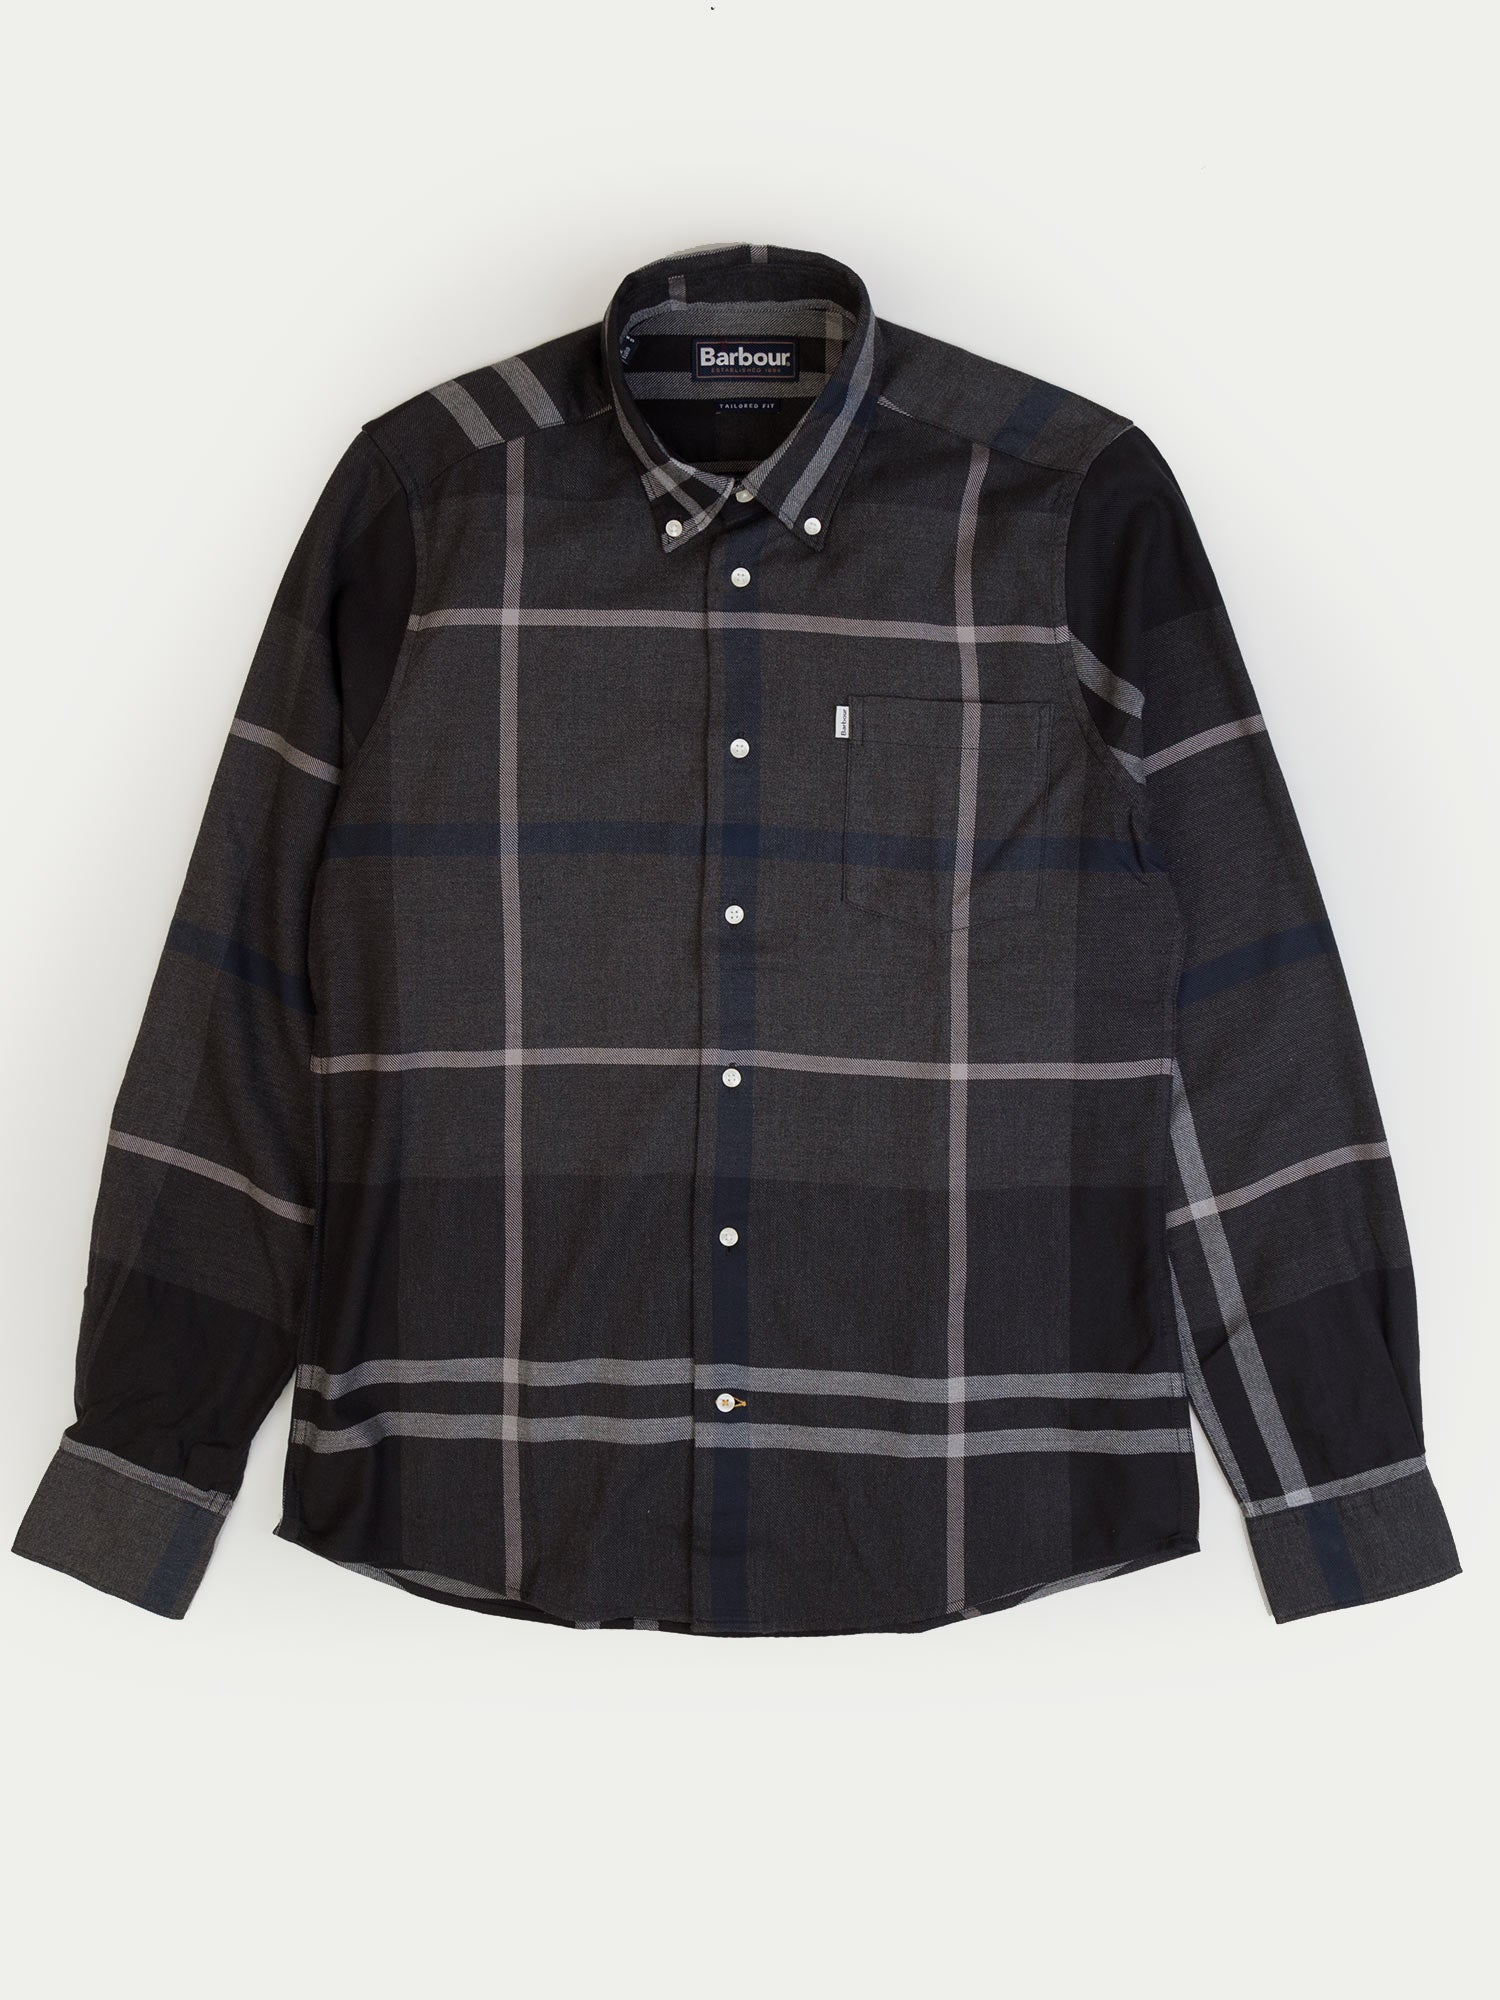 Barbour Dunoon Shirt (Graphite)